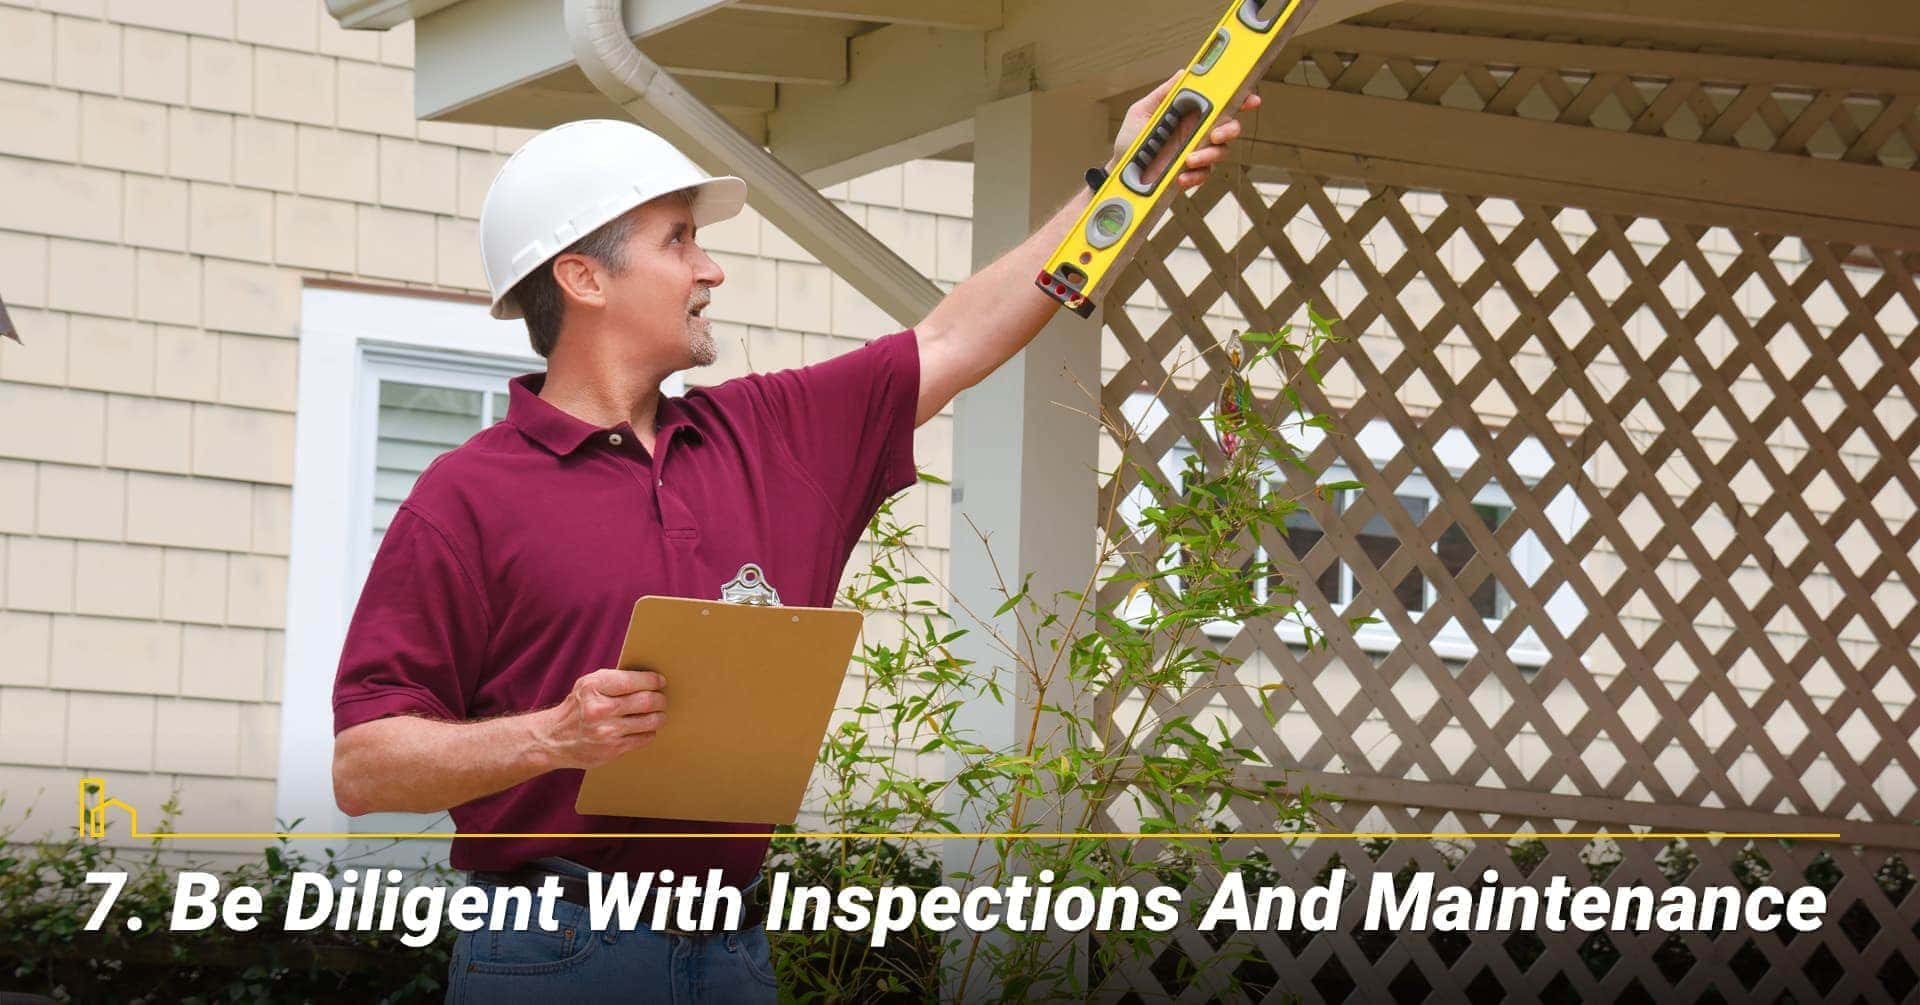 Be Diligent with Inspections and Maintenance, inspect and maintain your home well